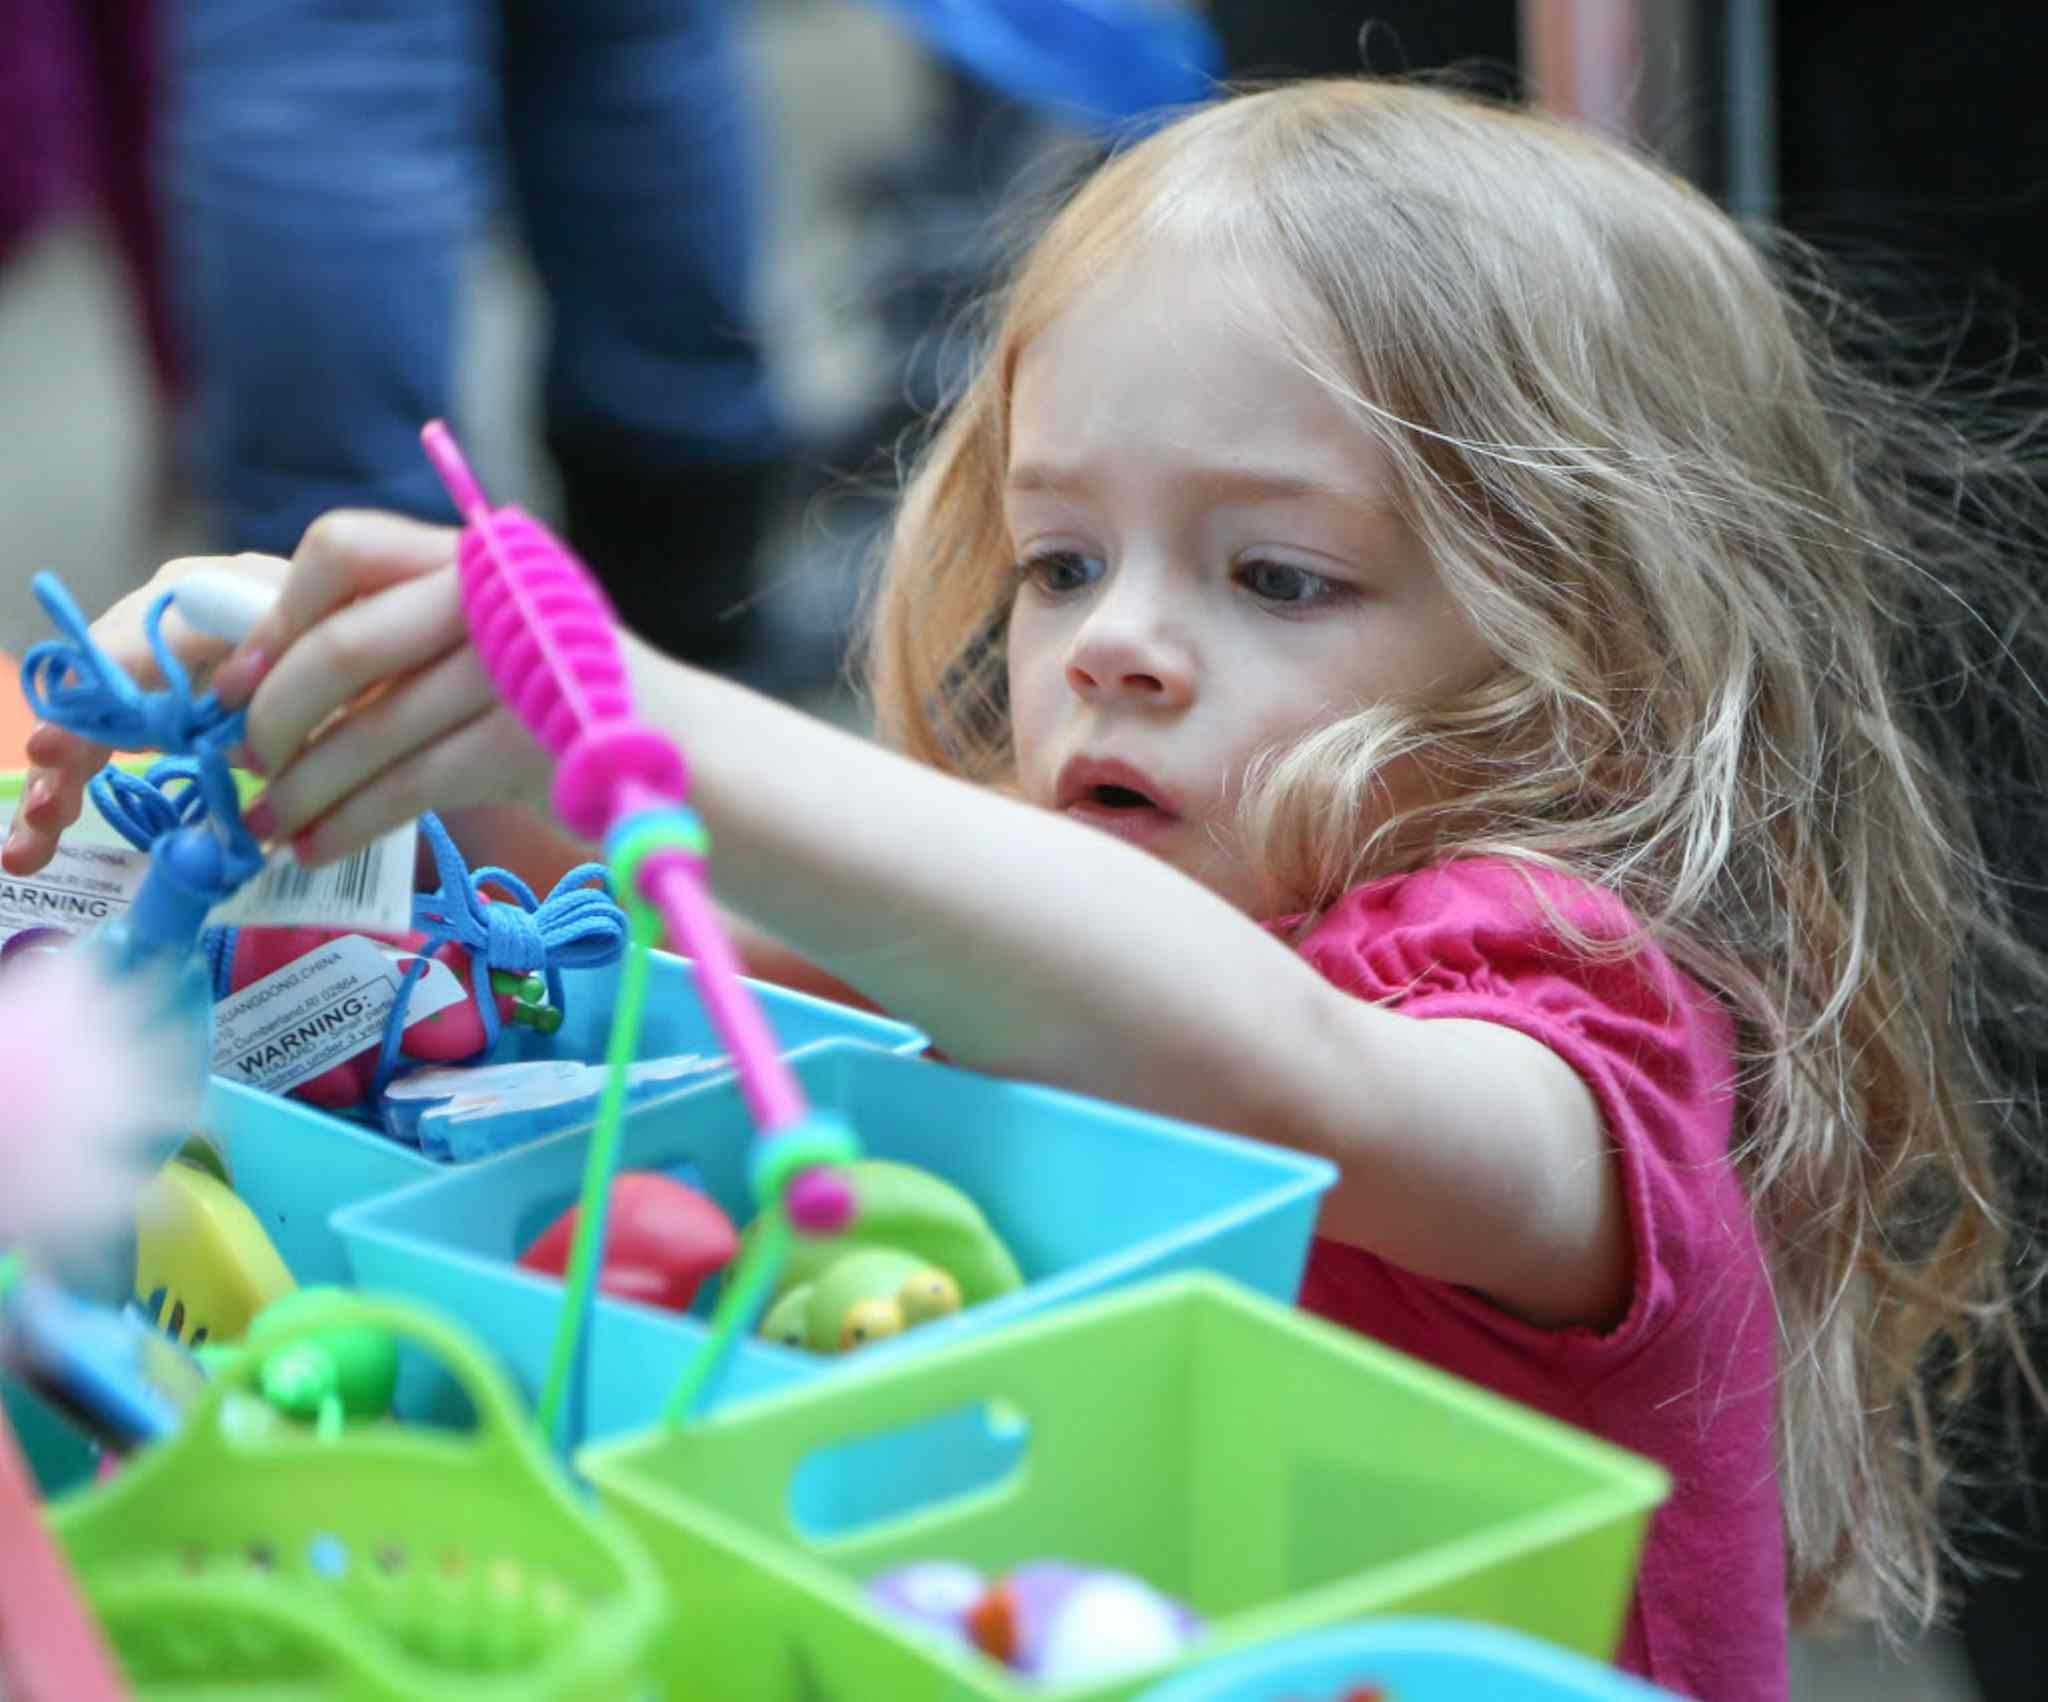 Lucy Sayre, 2, can't decide which colourful toy she likes more at the Forks on Tuesday.